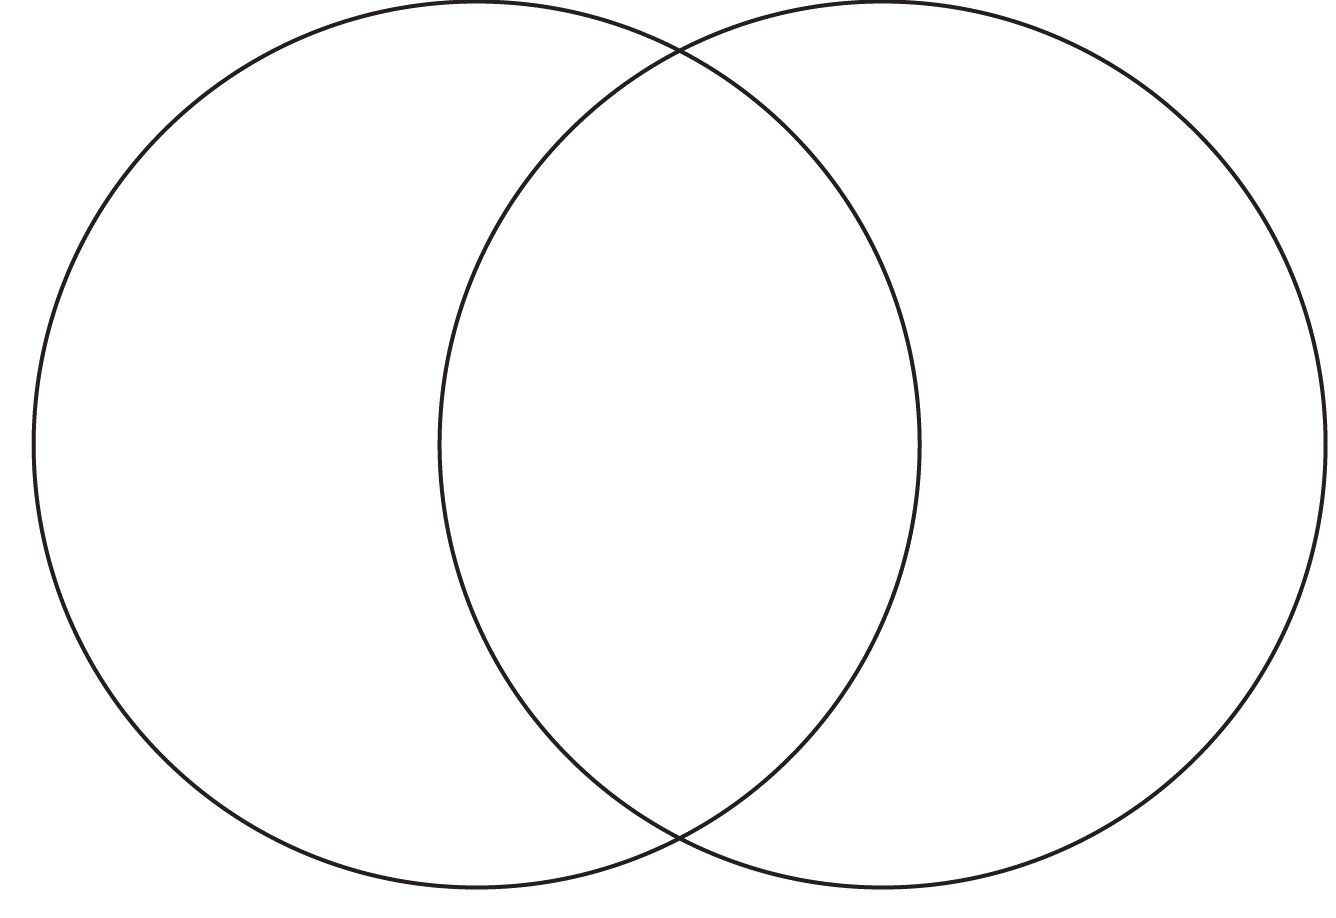 3 Circle Venn Diagram Questions